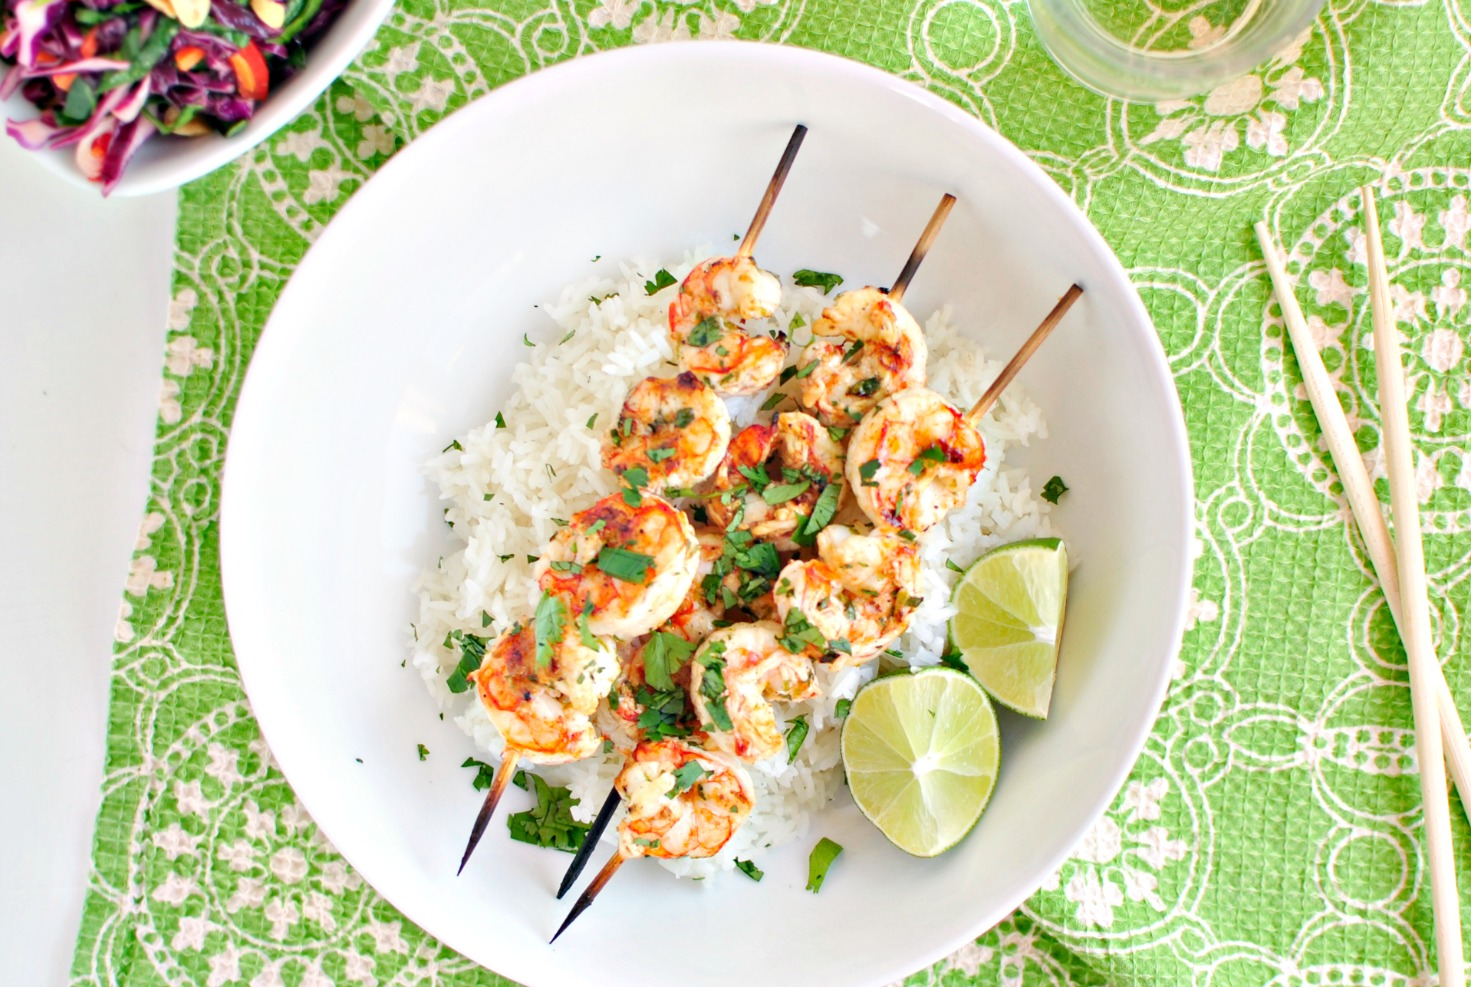 Simply Scratch » Grilled Garlic and Lime Shrimp Skewers » Print